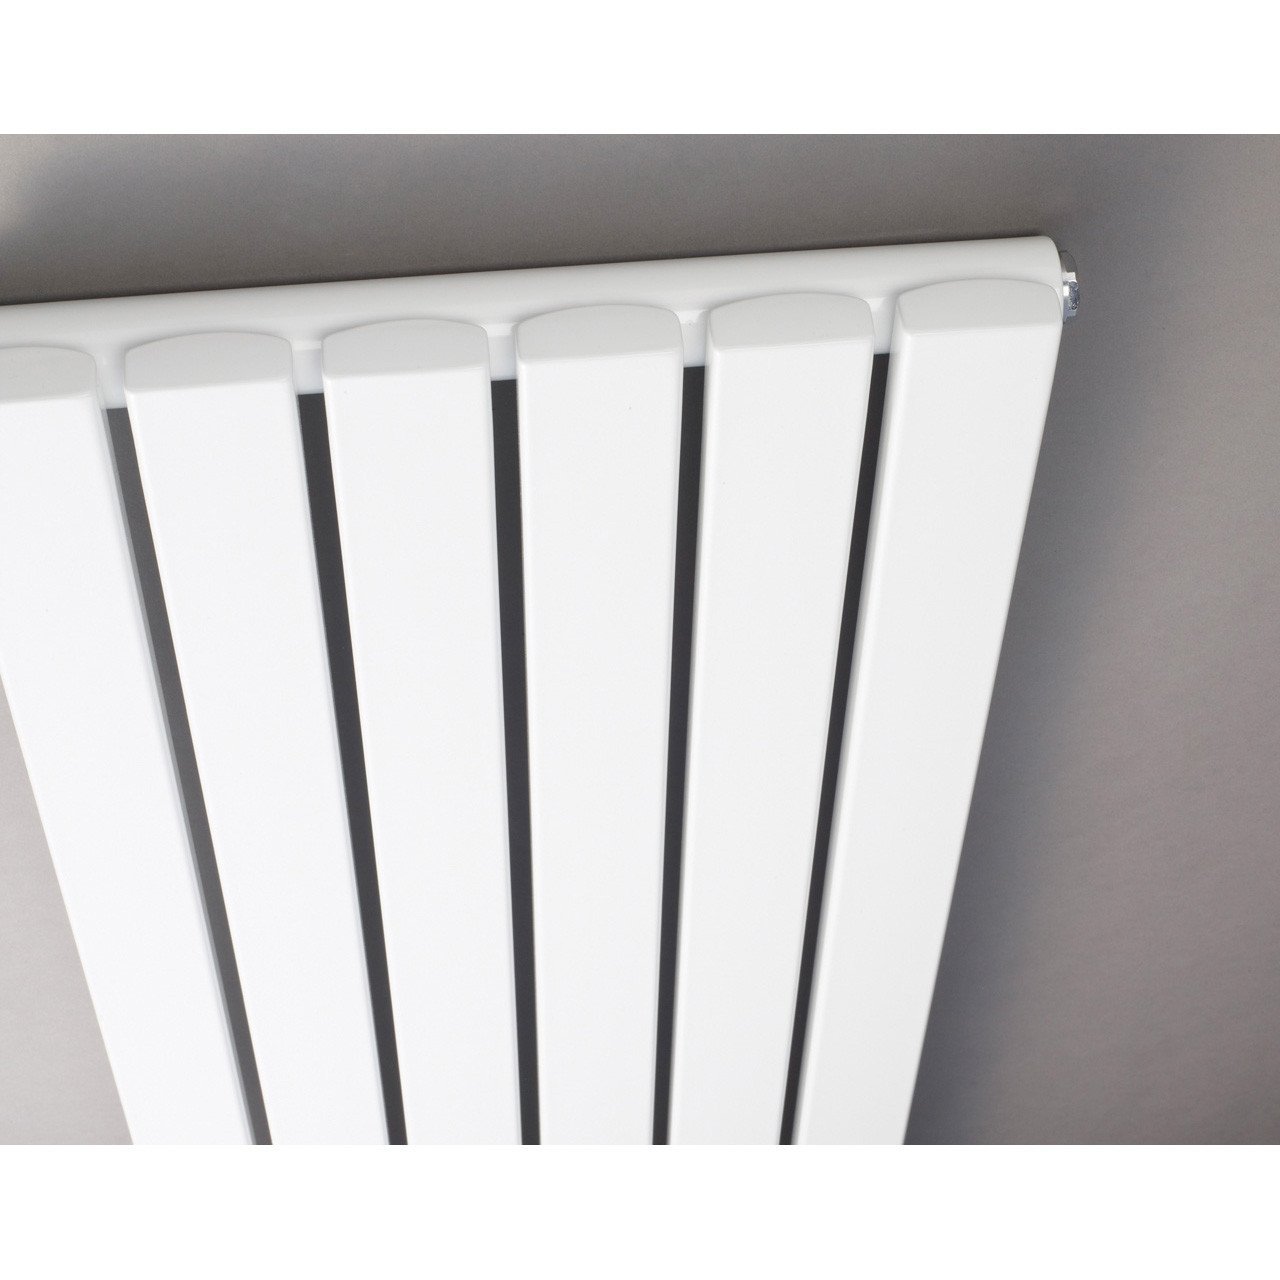 Hudson Reed Revive Single Panel Radiator 633mm x 1180 - HL325